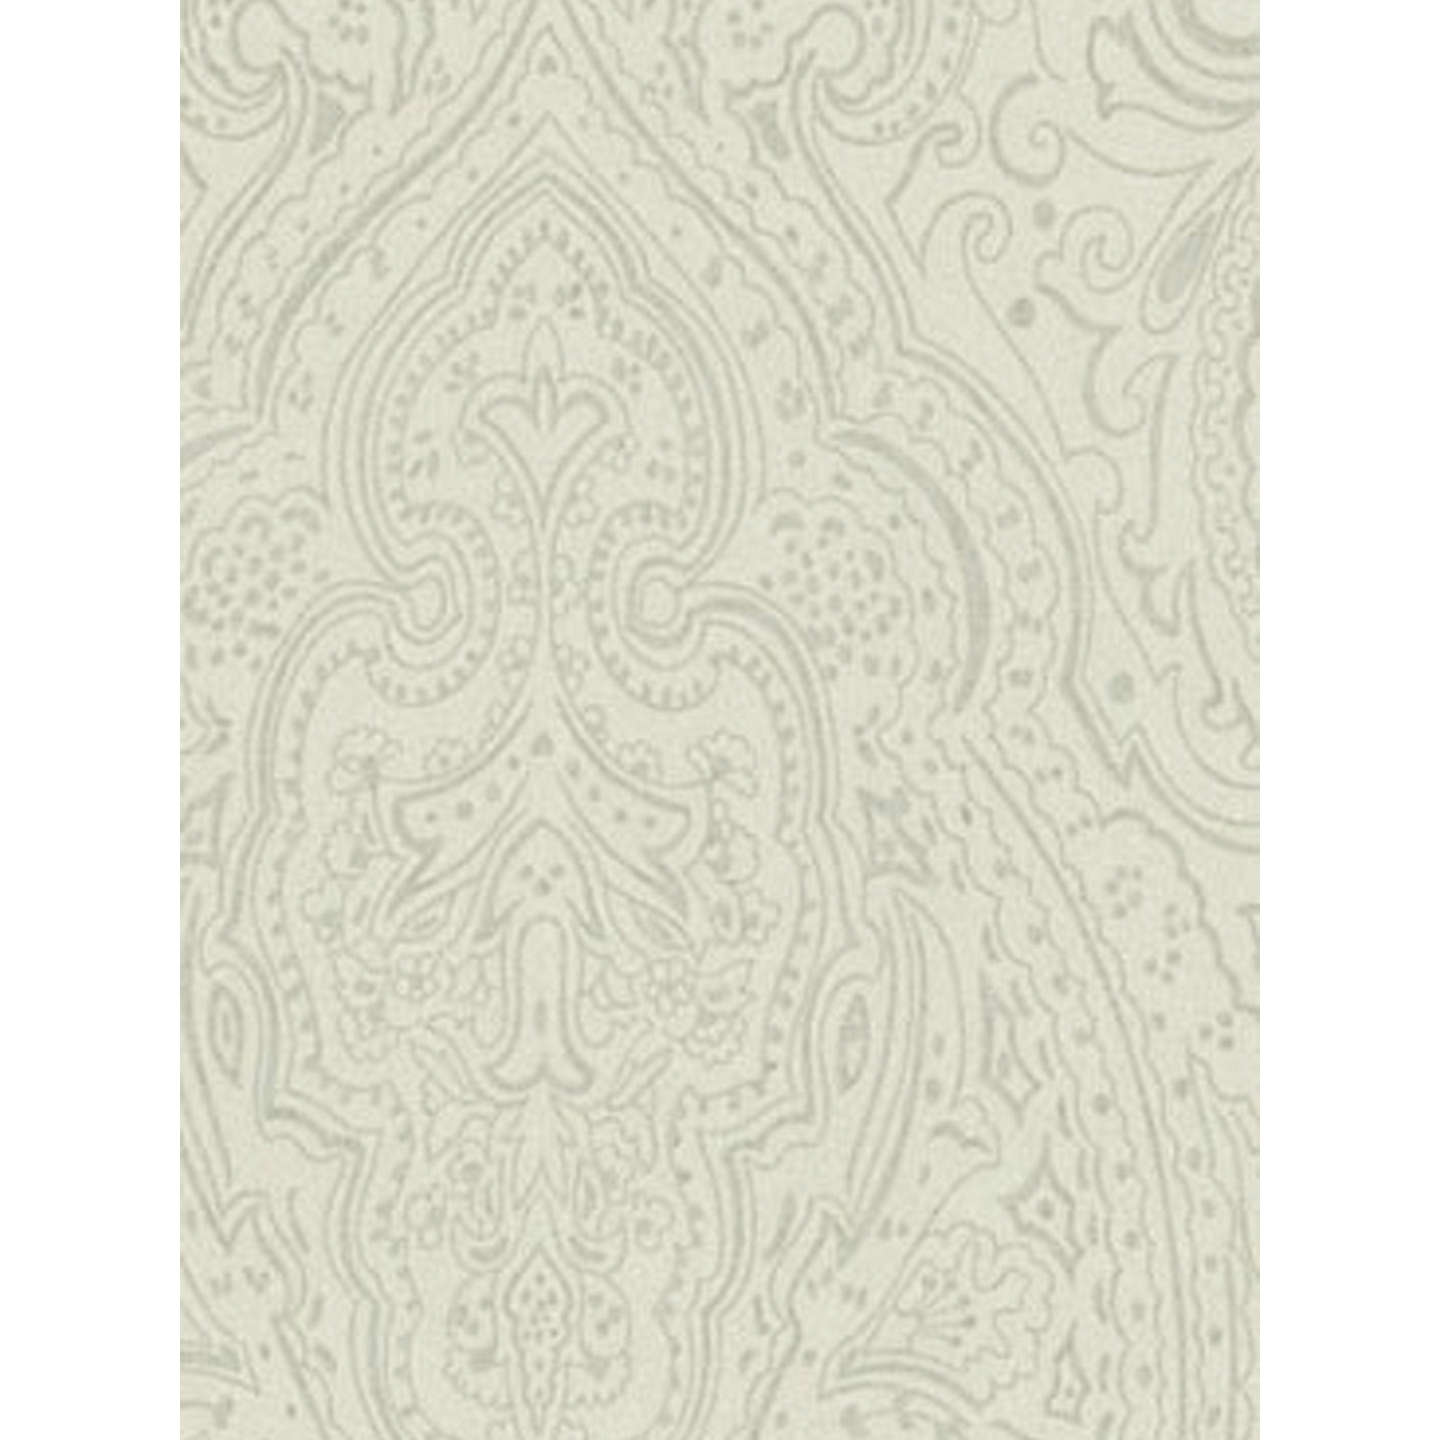 BuyOsborne & Little Vaujours Wallpaper, Linen / Silver, W6014-06 Online at johnlewis.com